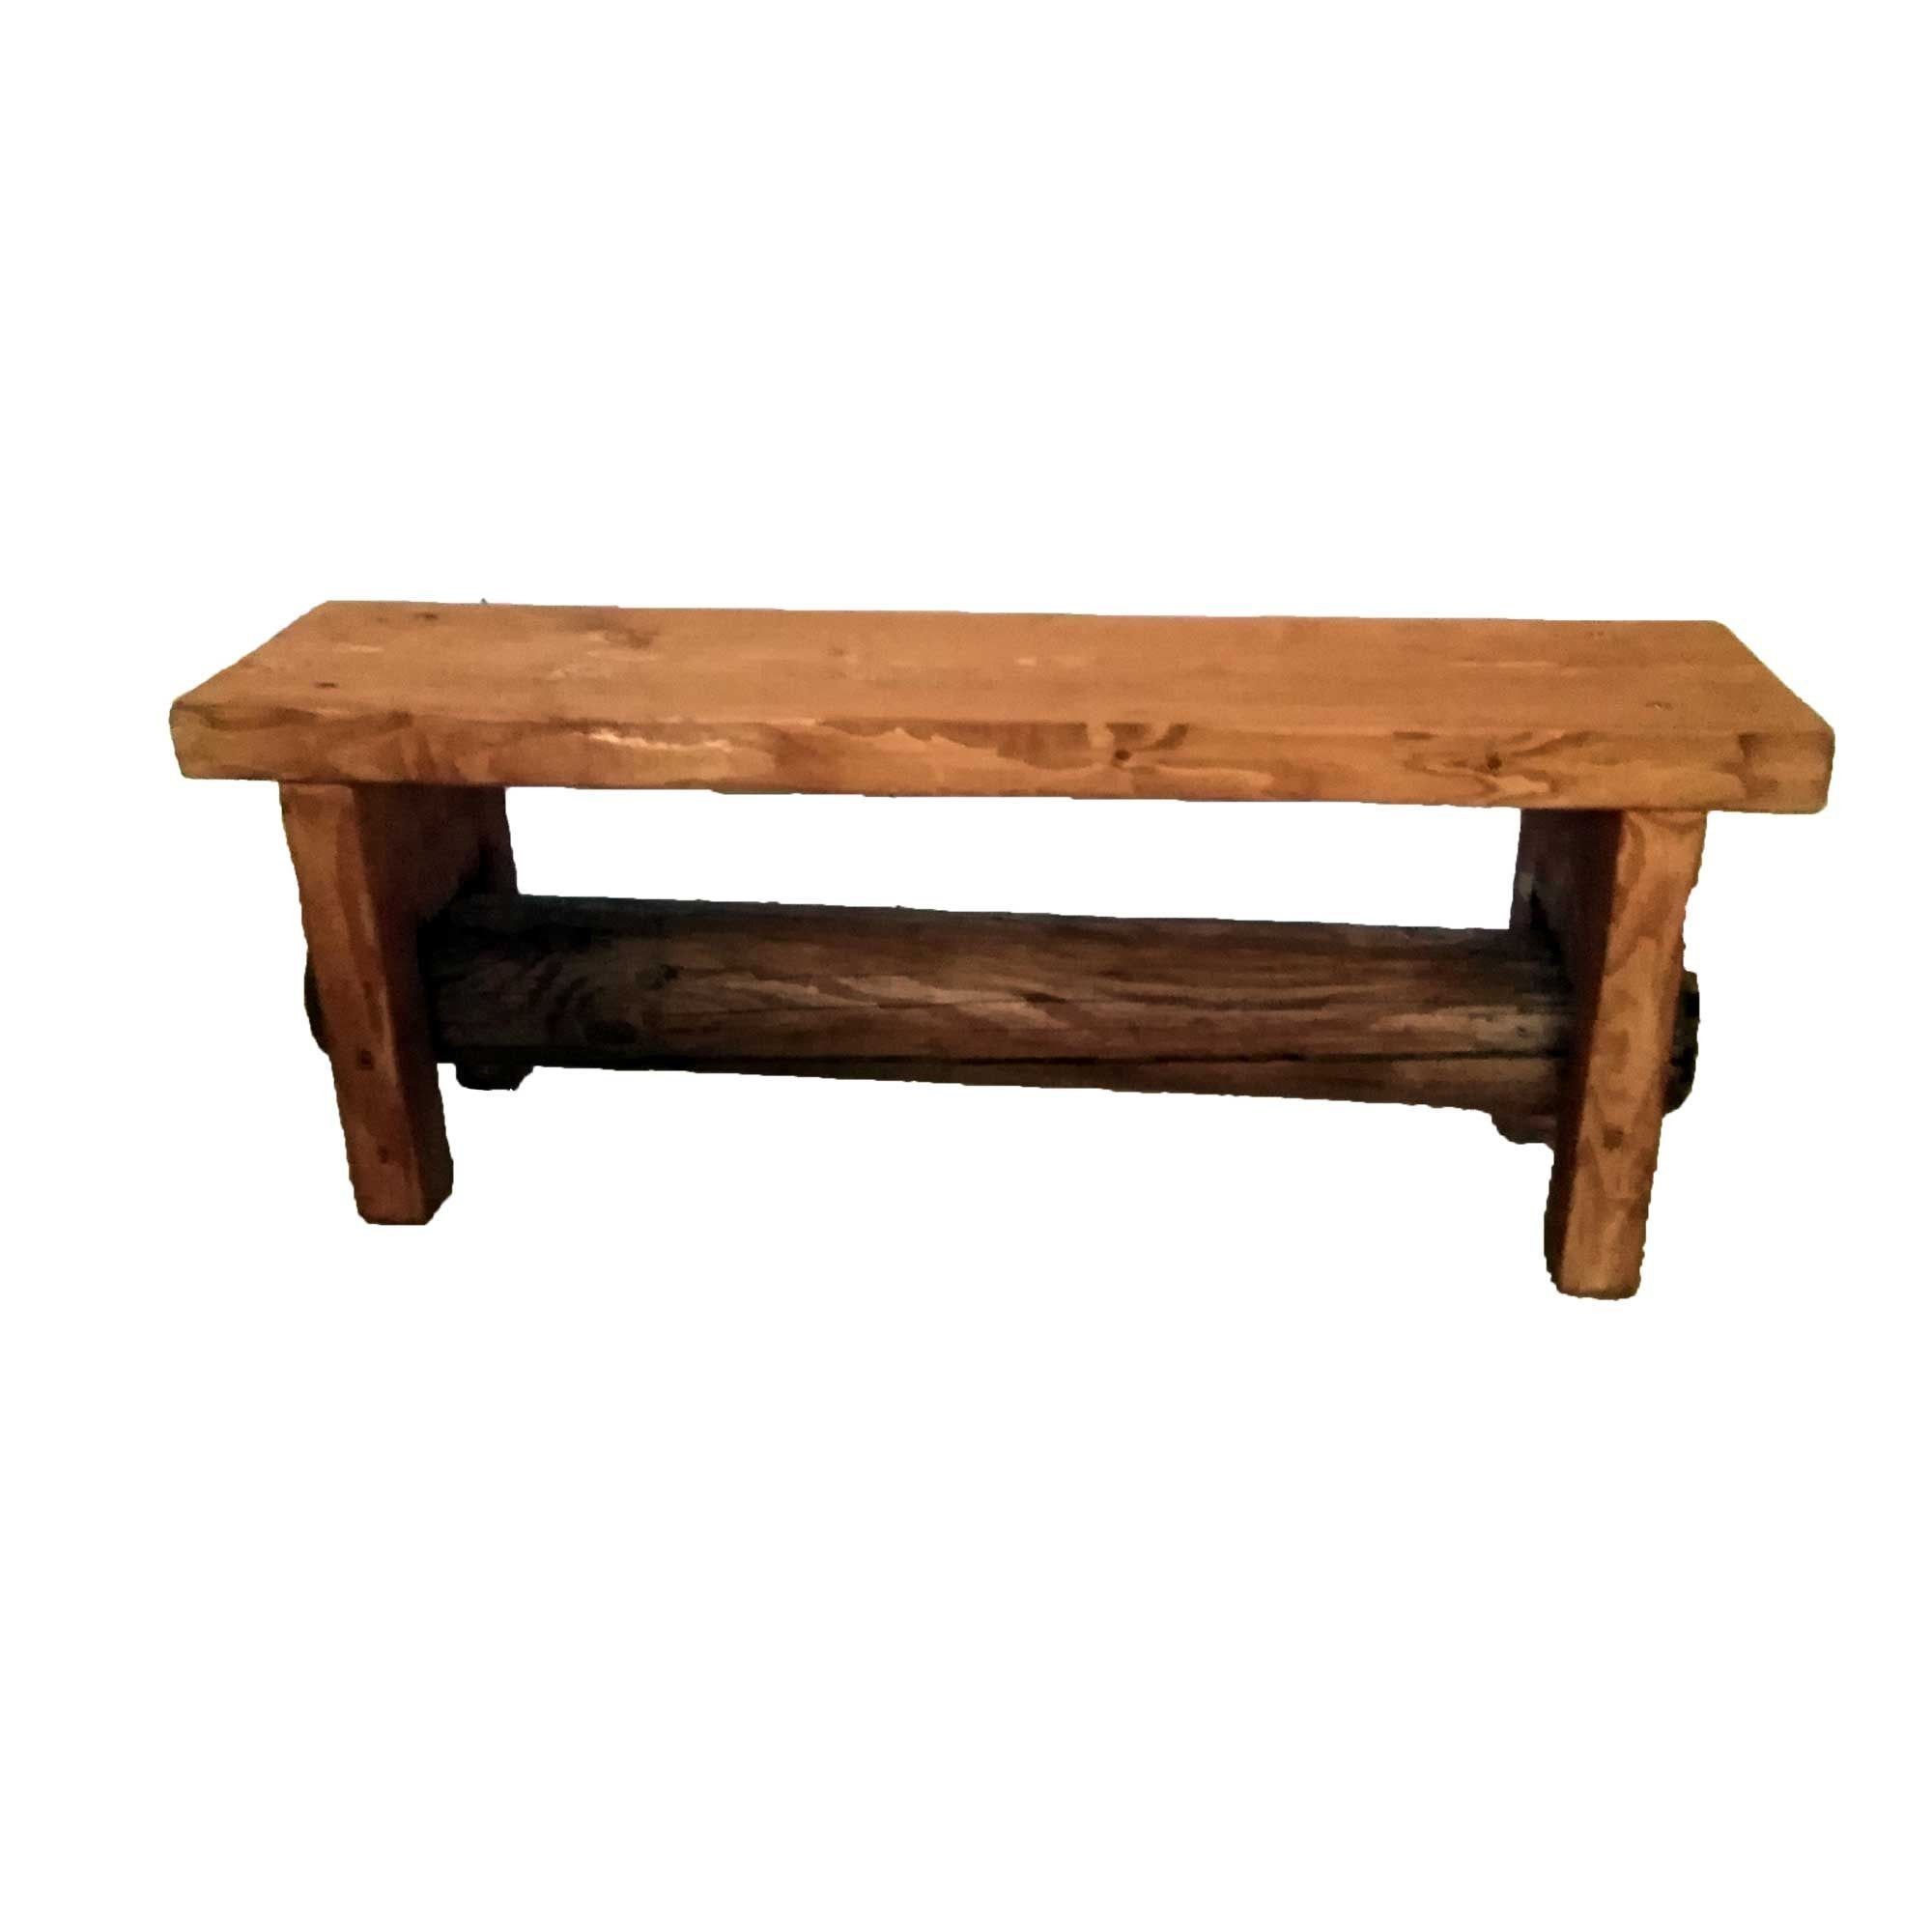 Holzbank Draußen Flower Bench Wooden Bench For Indoor & Outdoor Garden Bench Plank Winter Garden Bench Solid Wood Rustic Country House Style Vintage | Holzbank, Rustikale Landhäuser, Bank